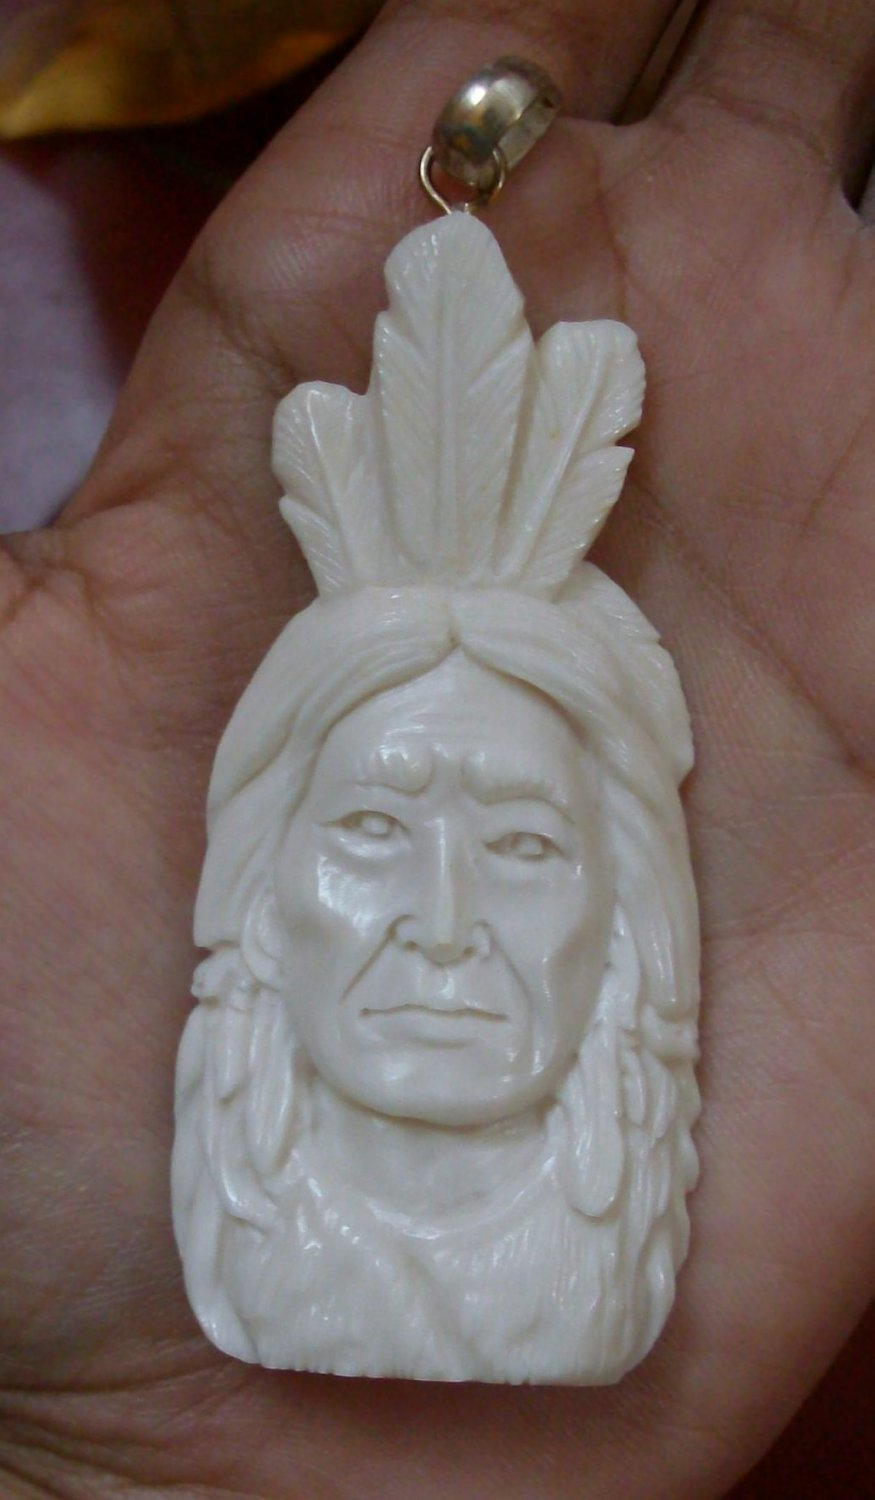 Bali Pendant Necklace INDIAN FACE Old From Buffalo Bone Carving With Silver Bail 925 #r151